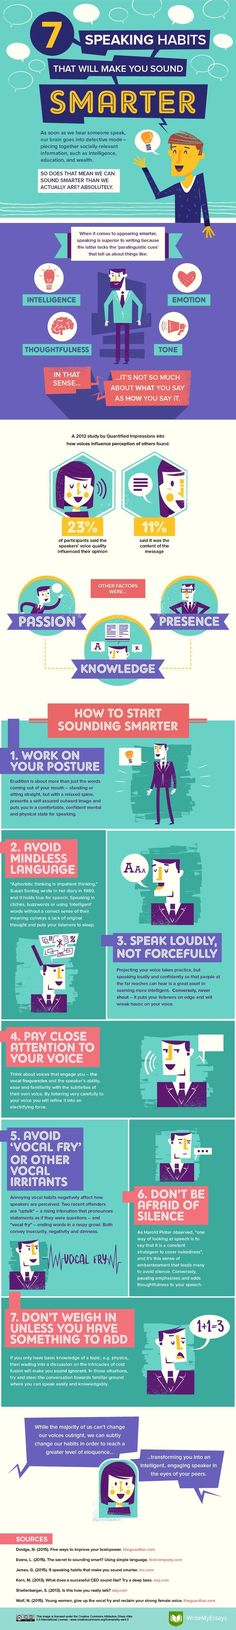 7 Speaking Habits That Will Make You Sound Smarter Infographic -